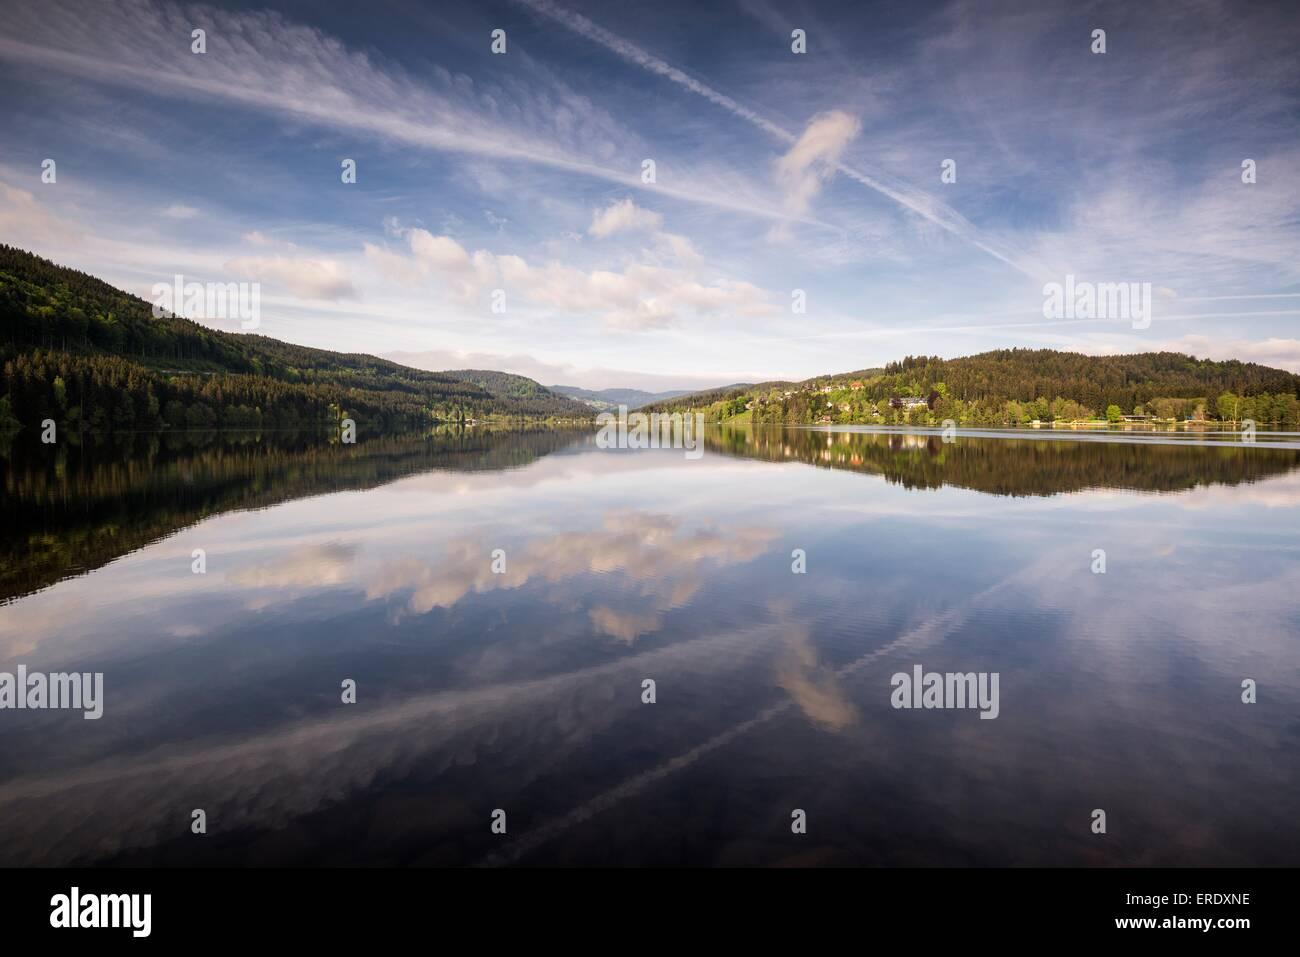 Water reflections on the Titisee lake in the Black Forest, Breisgau-Hochschwarzwald, Baden-Württemberg, Germany - Stock Image